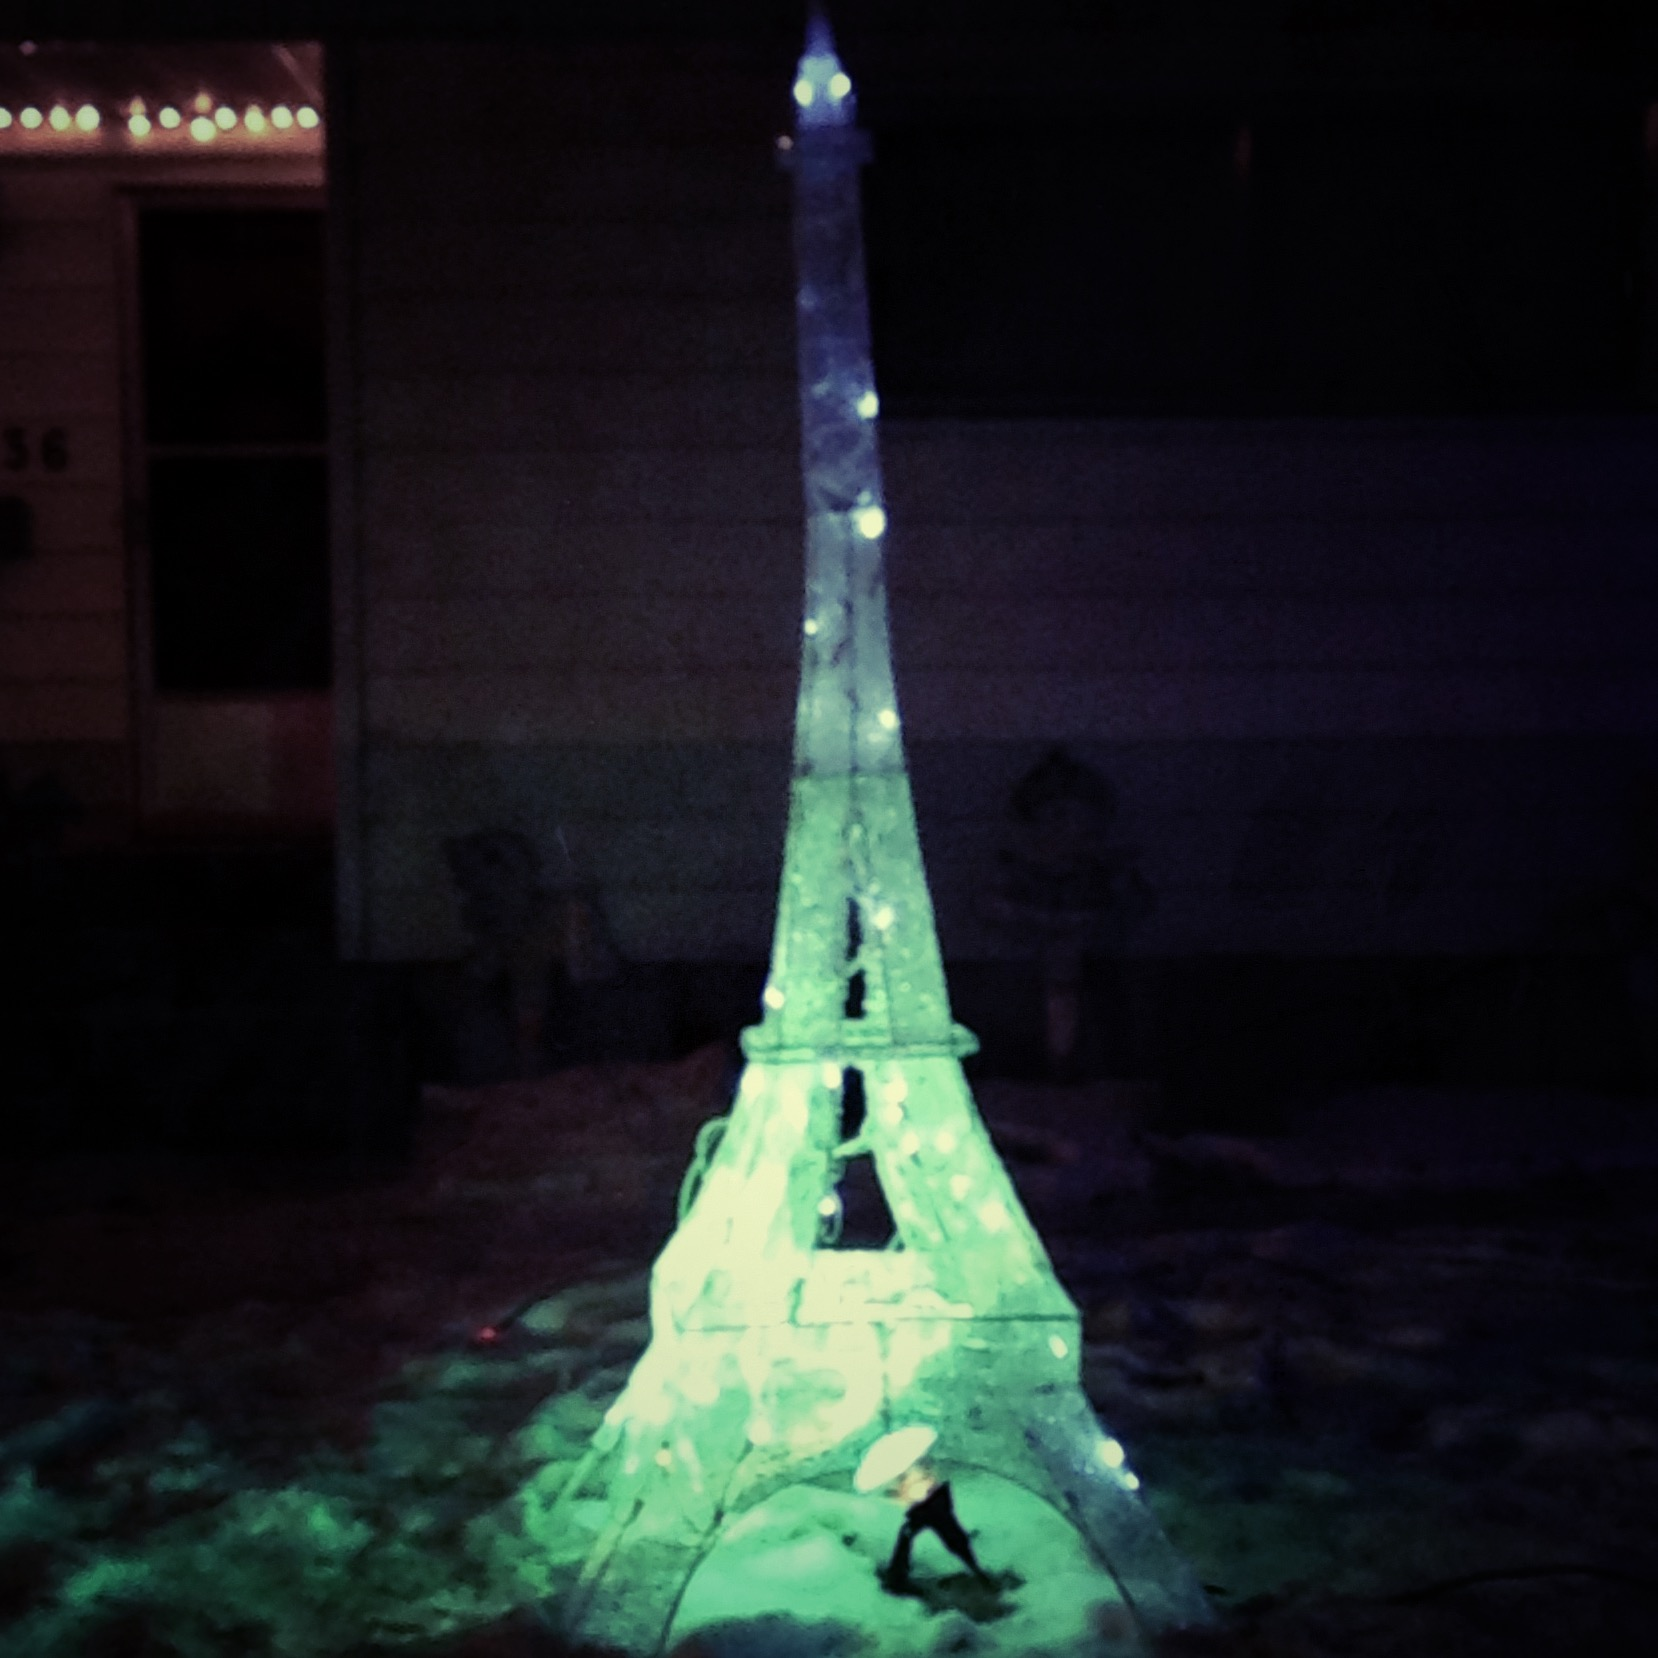 Mediocre effort IMO, but we do love paris around these parts.